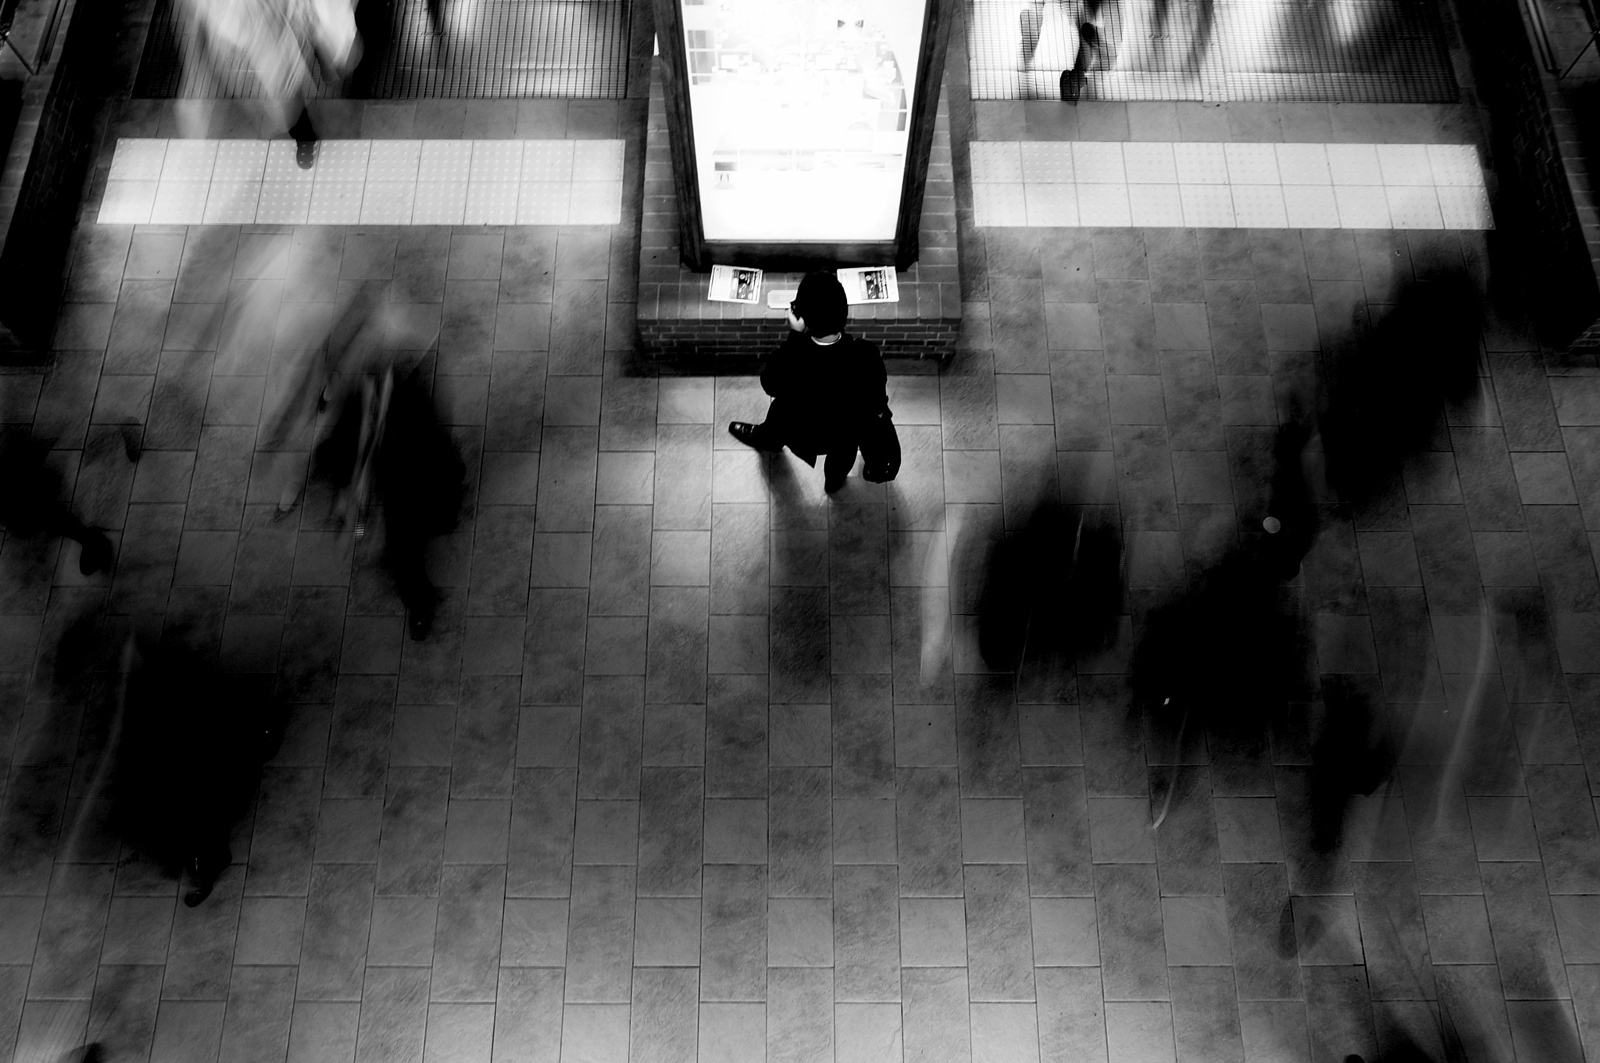 Embrace the Blur: Go Try Long-Exposure Street Photography